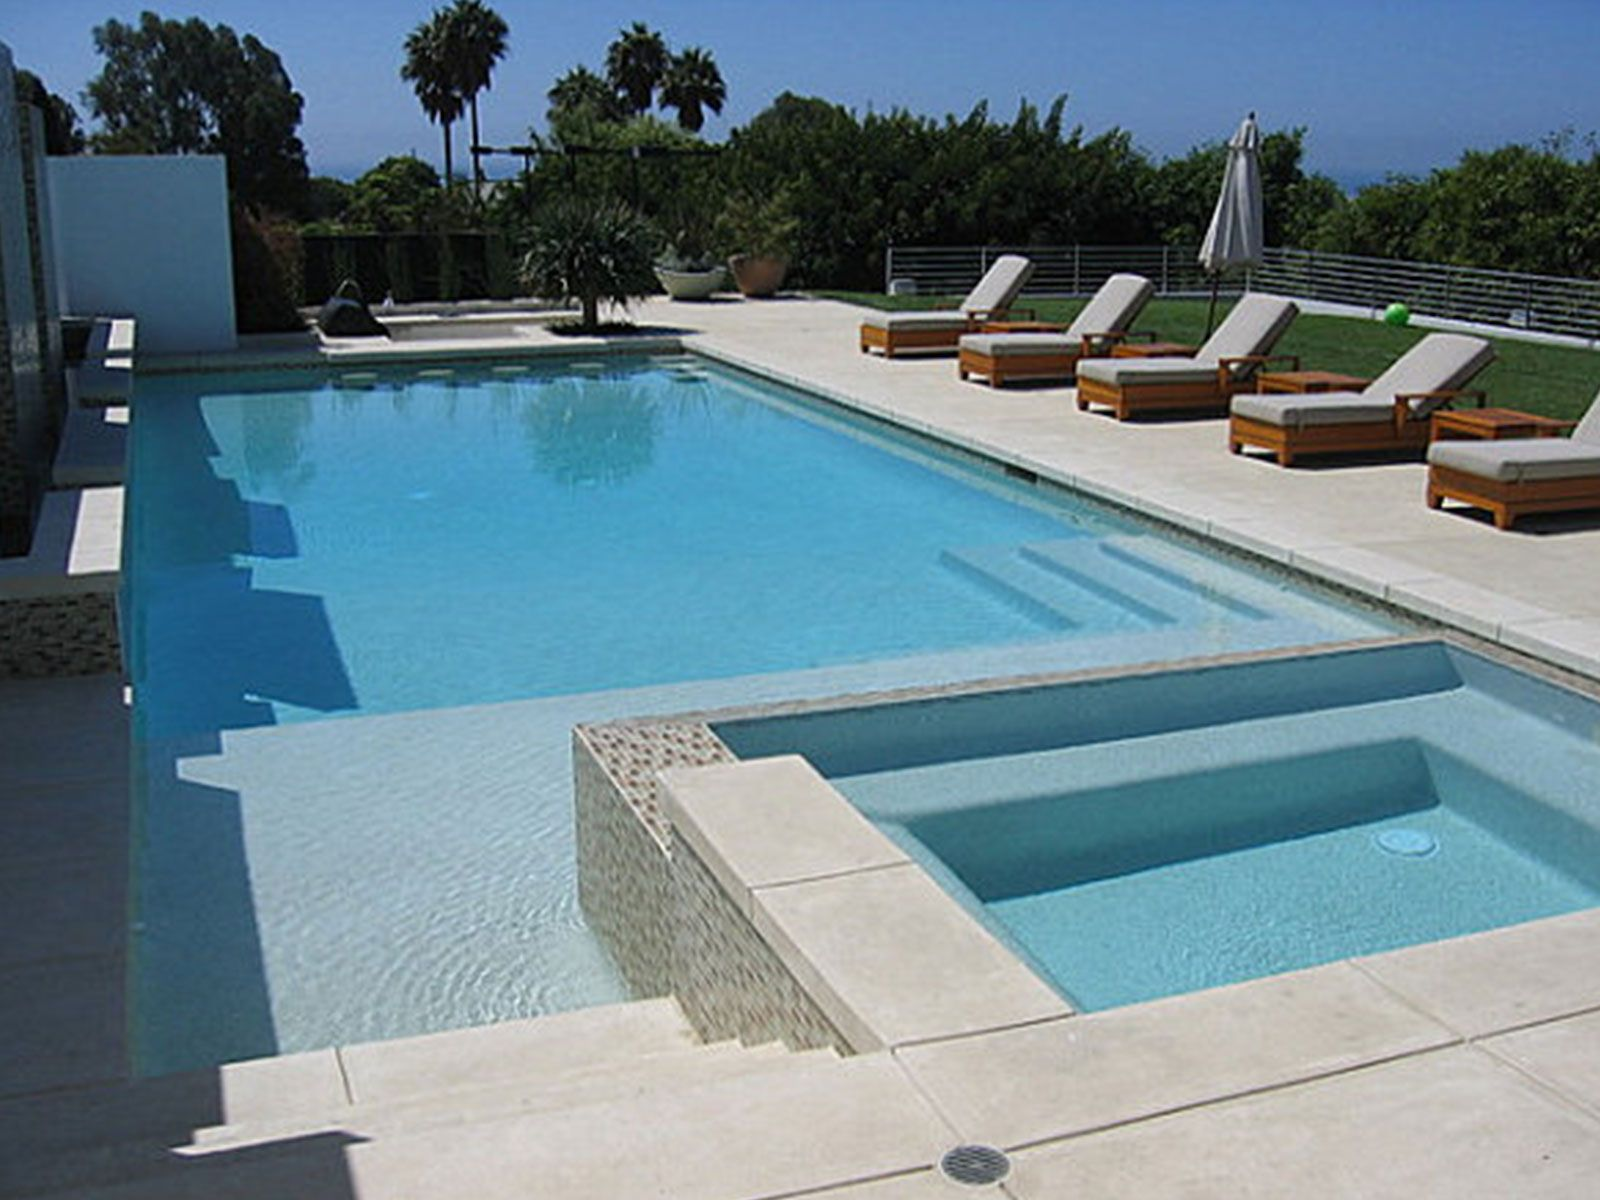 Simple swimming pool design image modern creative swimming for Backyard pool design ideas